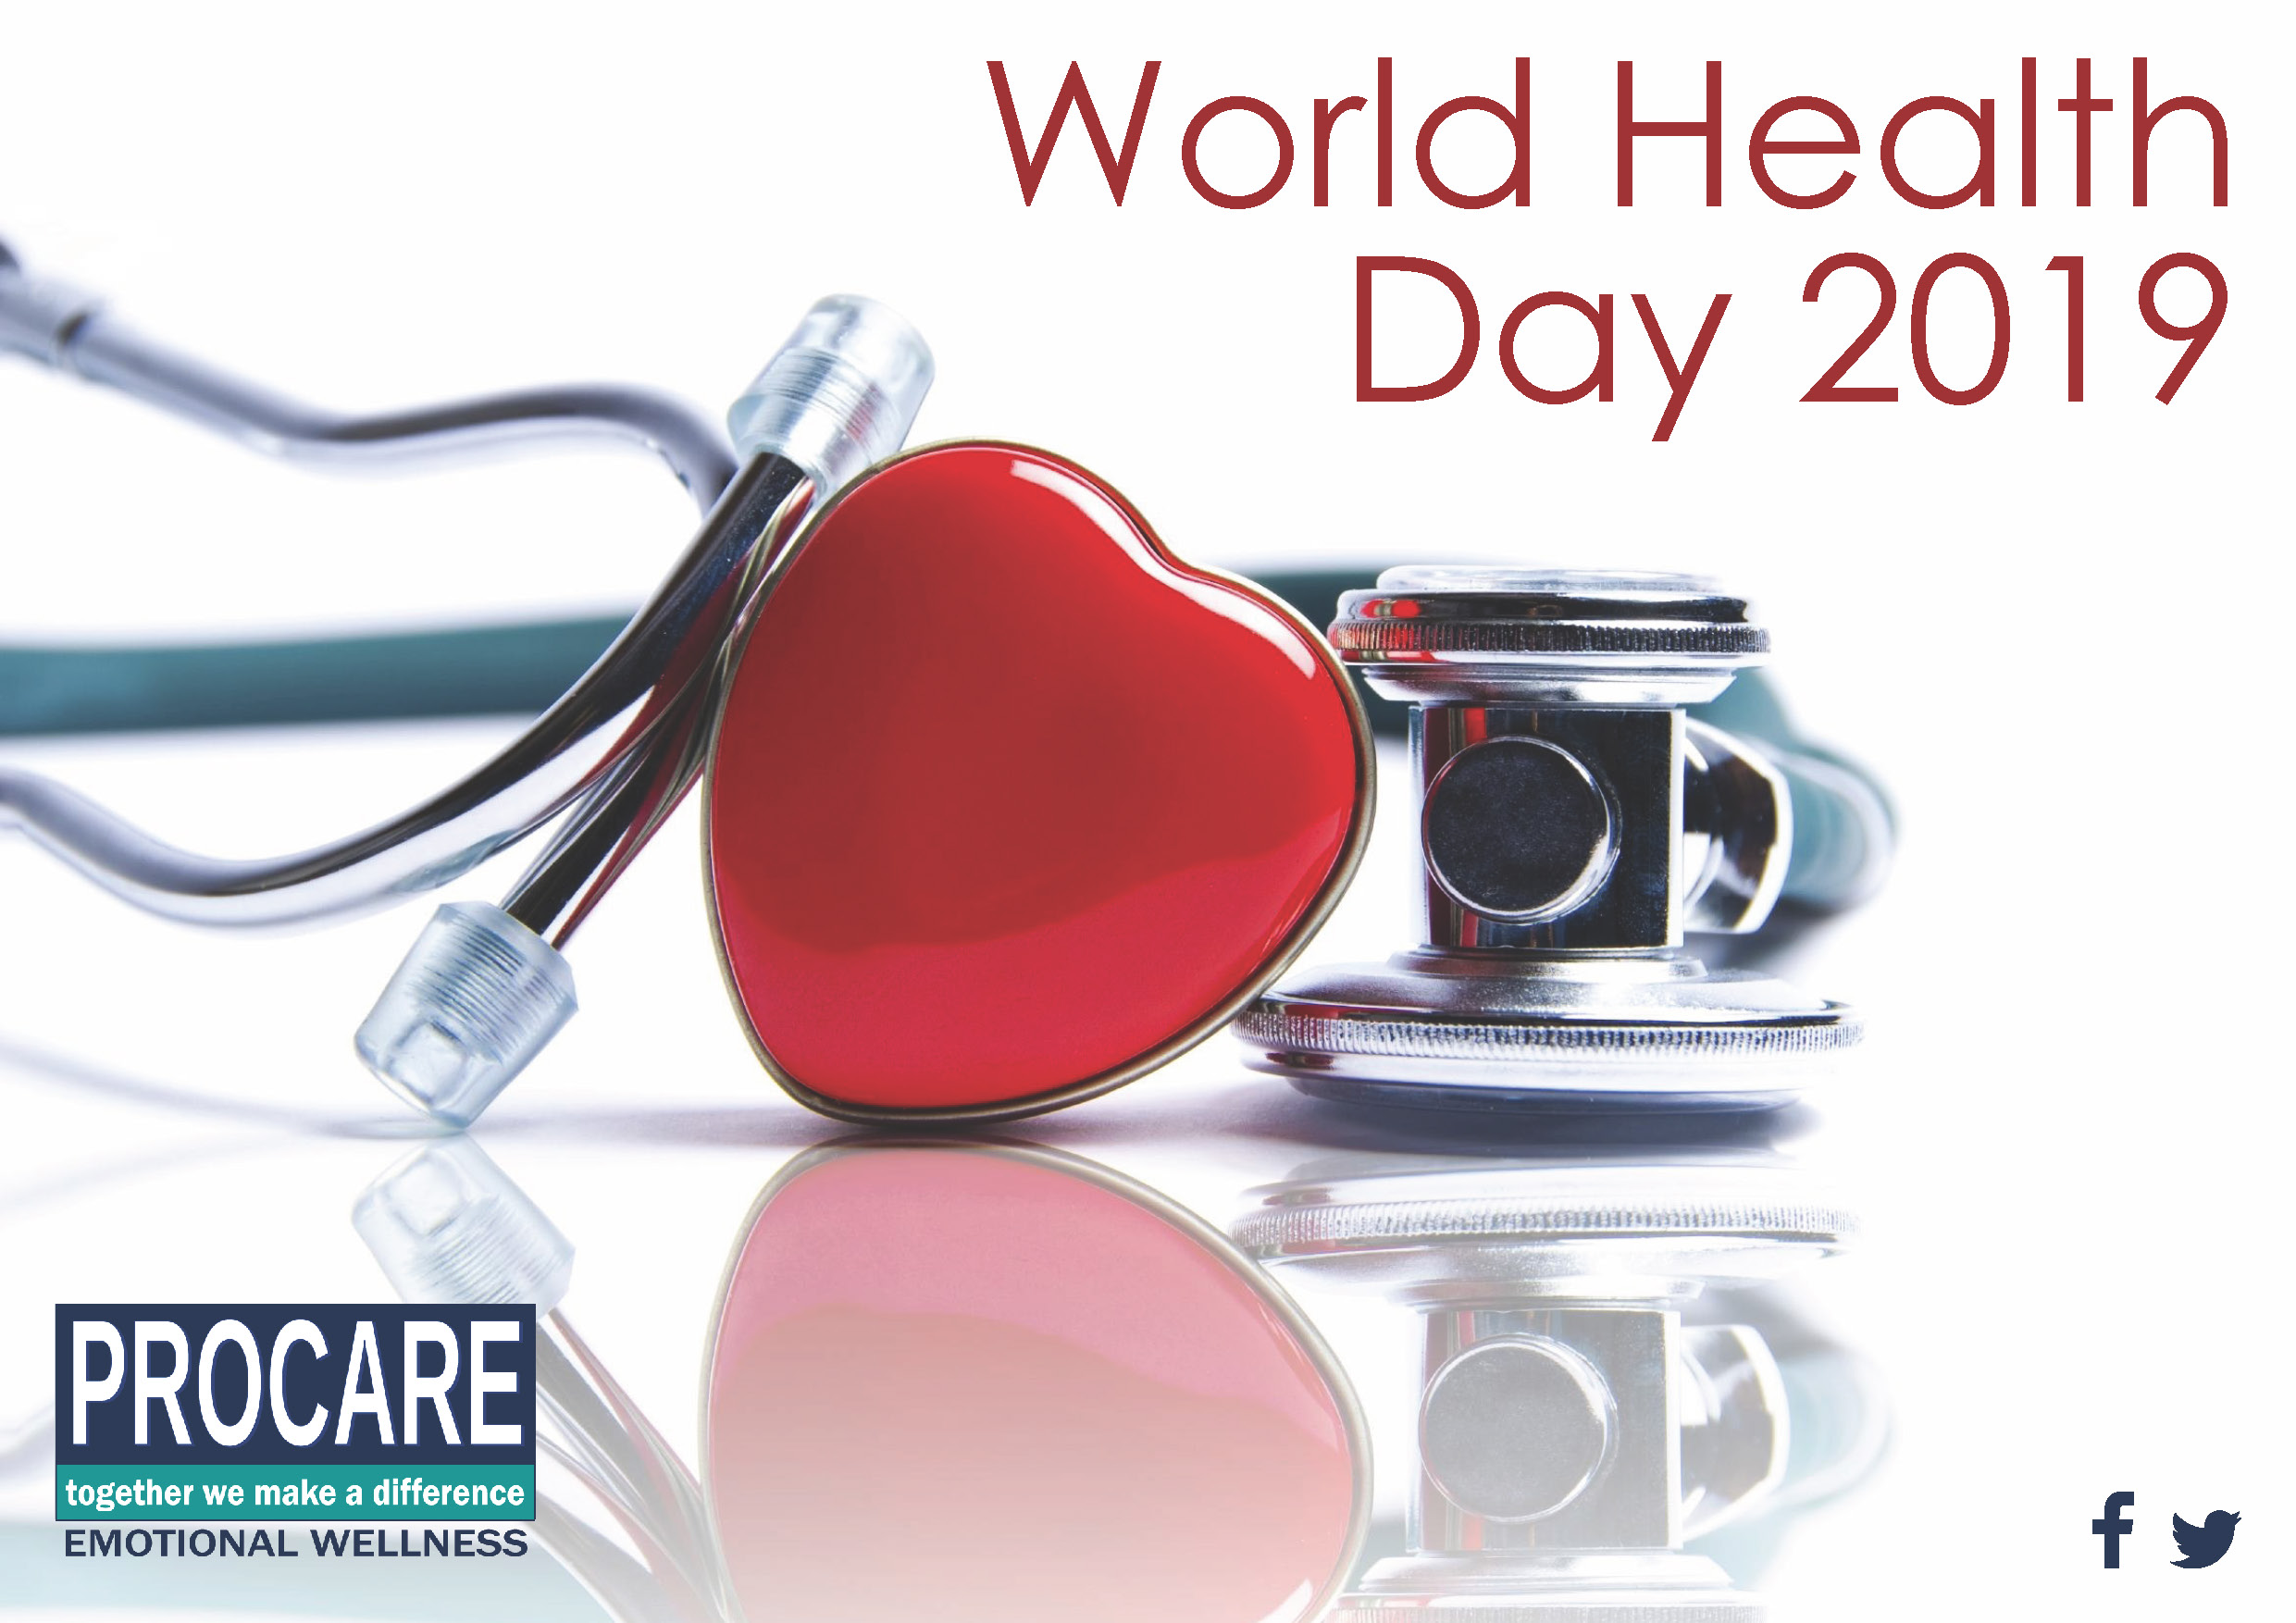 World Health Day 2019.jpg